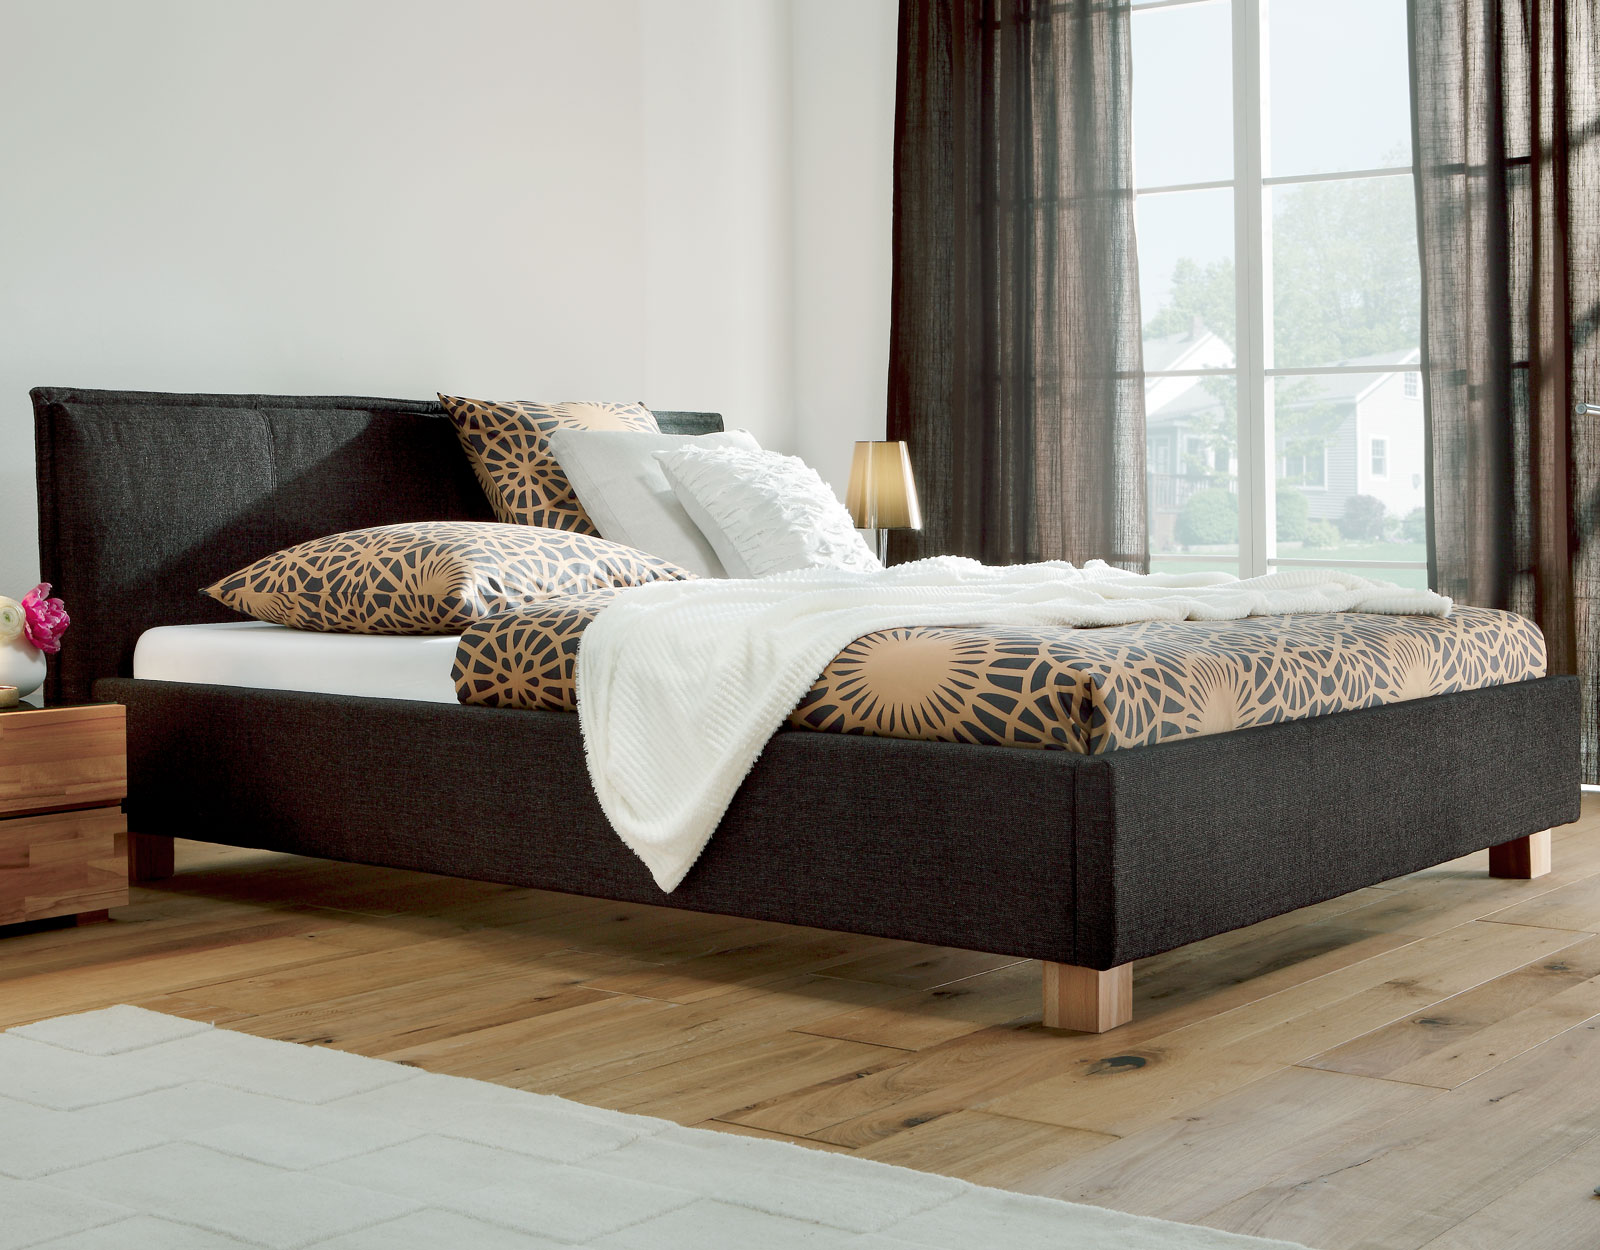 spannende bett modern design fotos erindzain. Black Bedroom Furniture Sets. Home Design Ideas